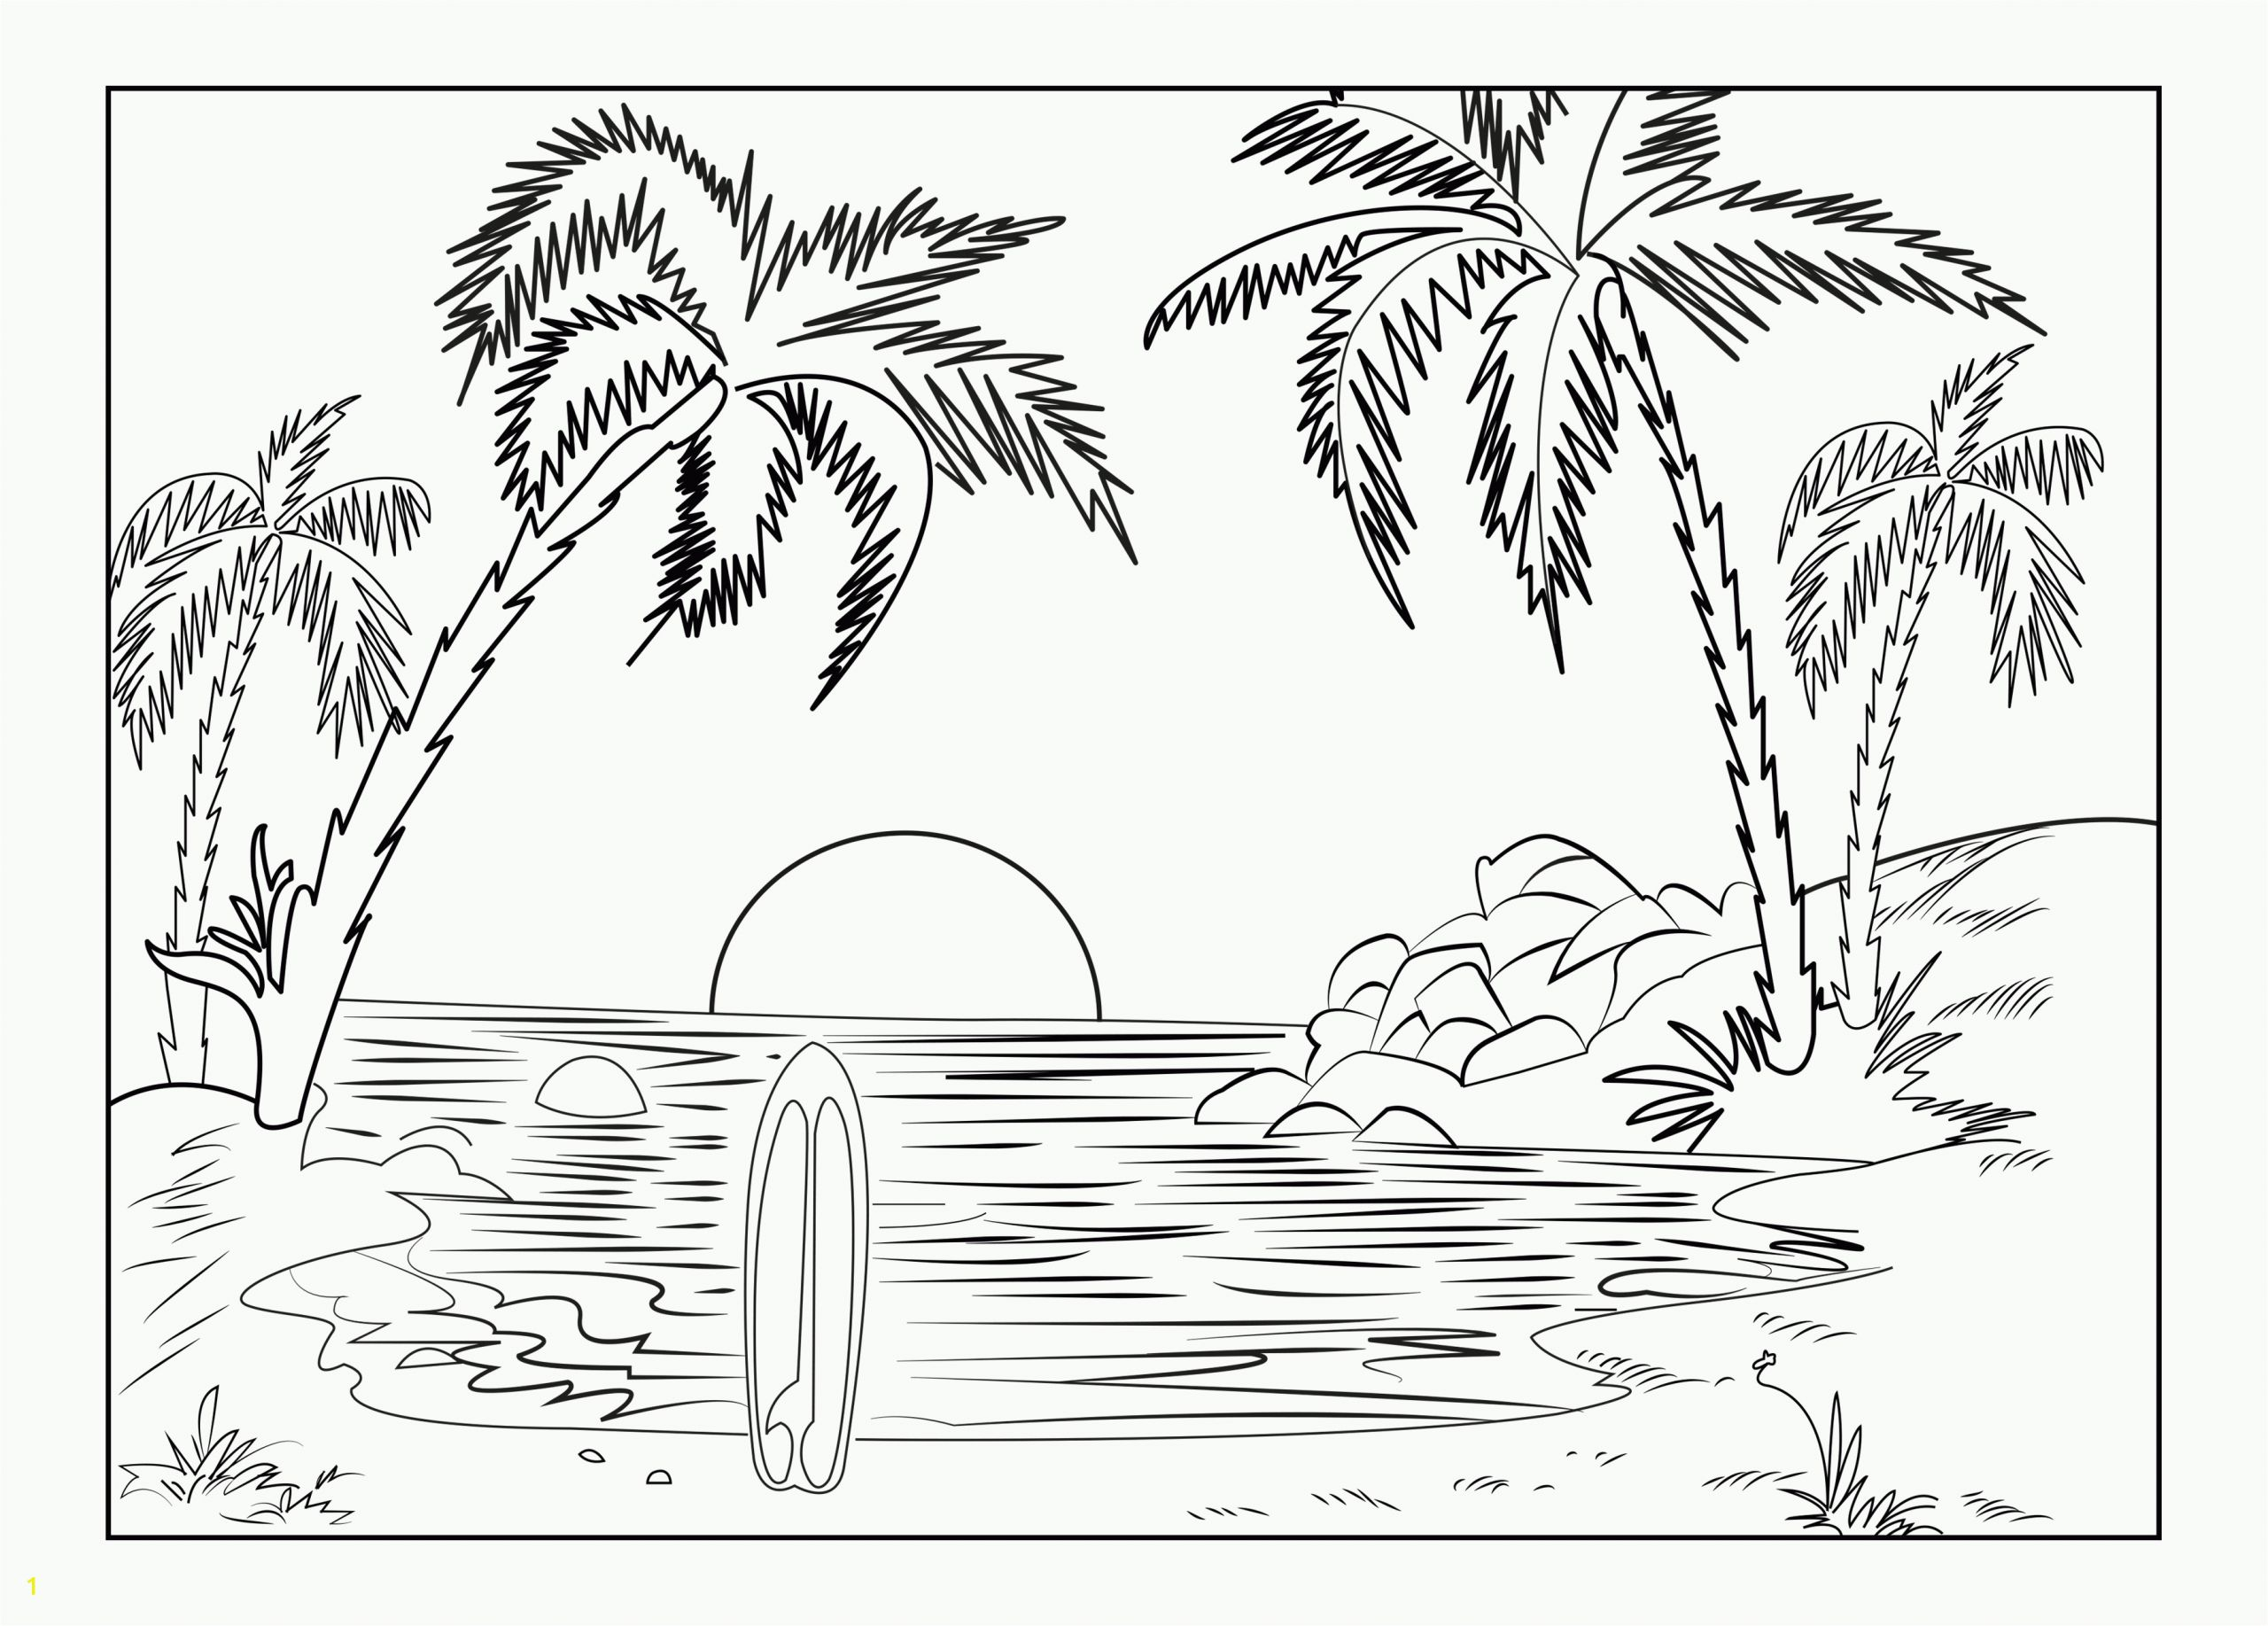 Free Printable Beach Scene Coloring Pages Scenery Coloring Pages for Adults Best Coloring Pages